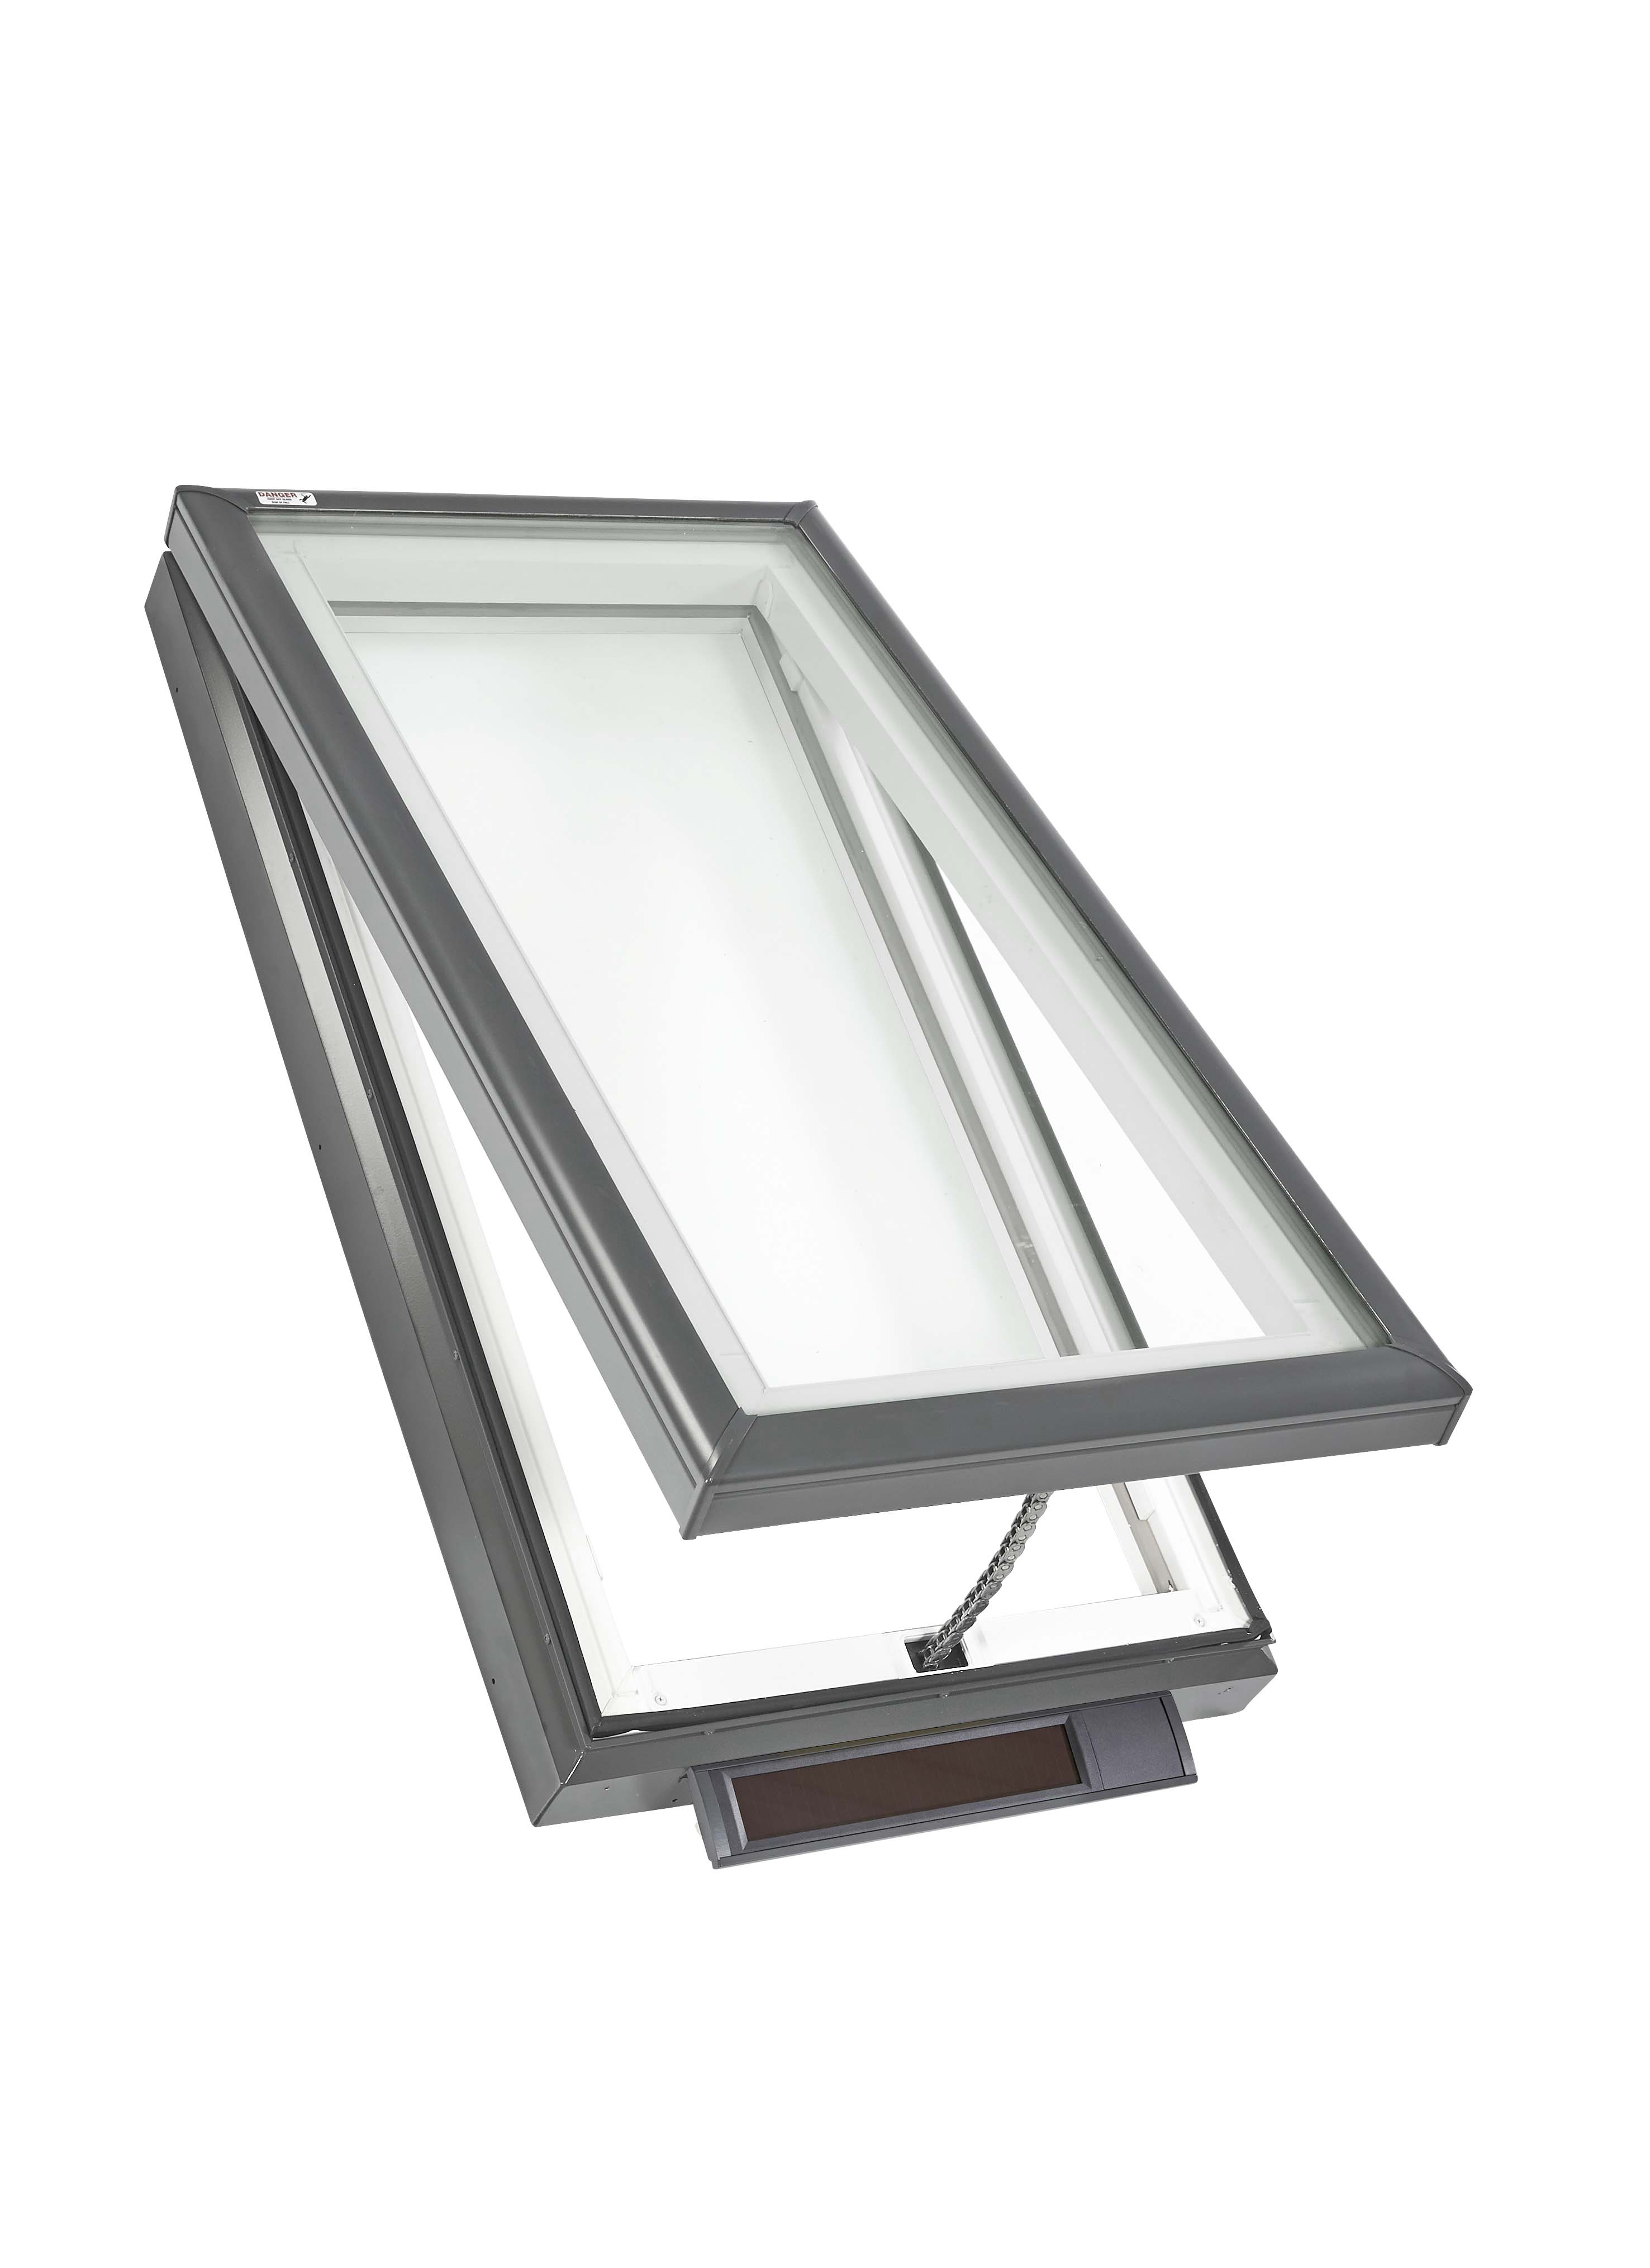 Curb Key Lowes : lowes, Velux, Solar, Venting, Mount, Skylight, 22.5-in, 34.5-in, Lowe's, Canada